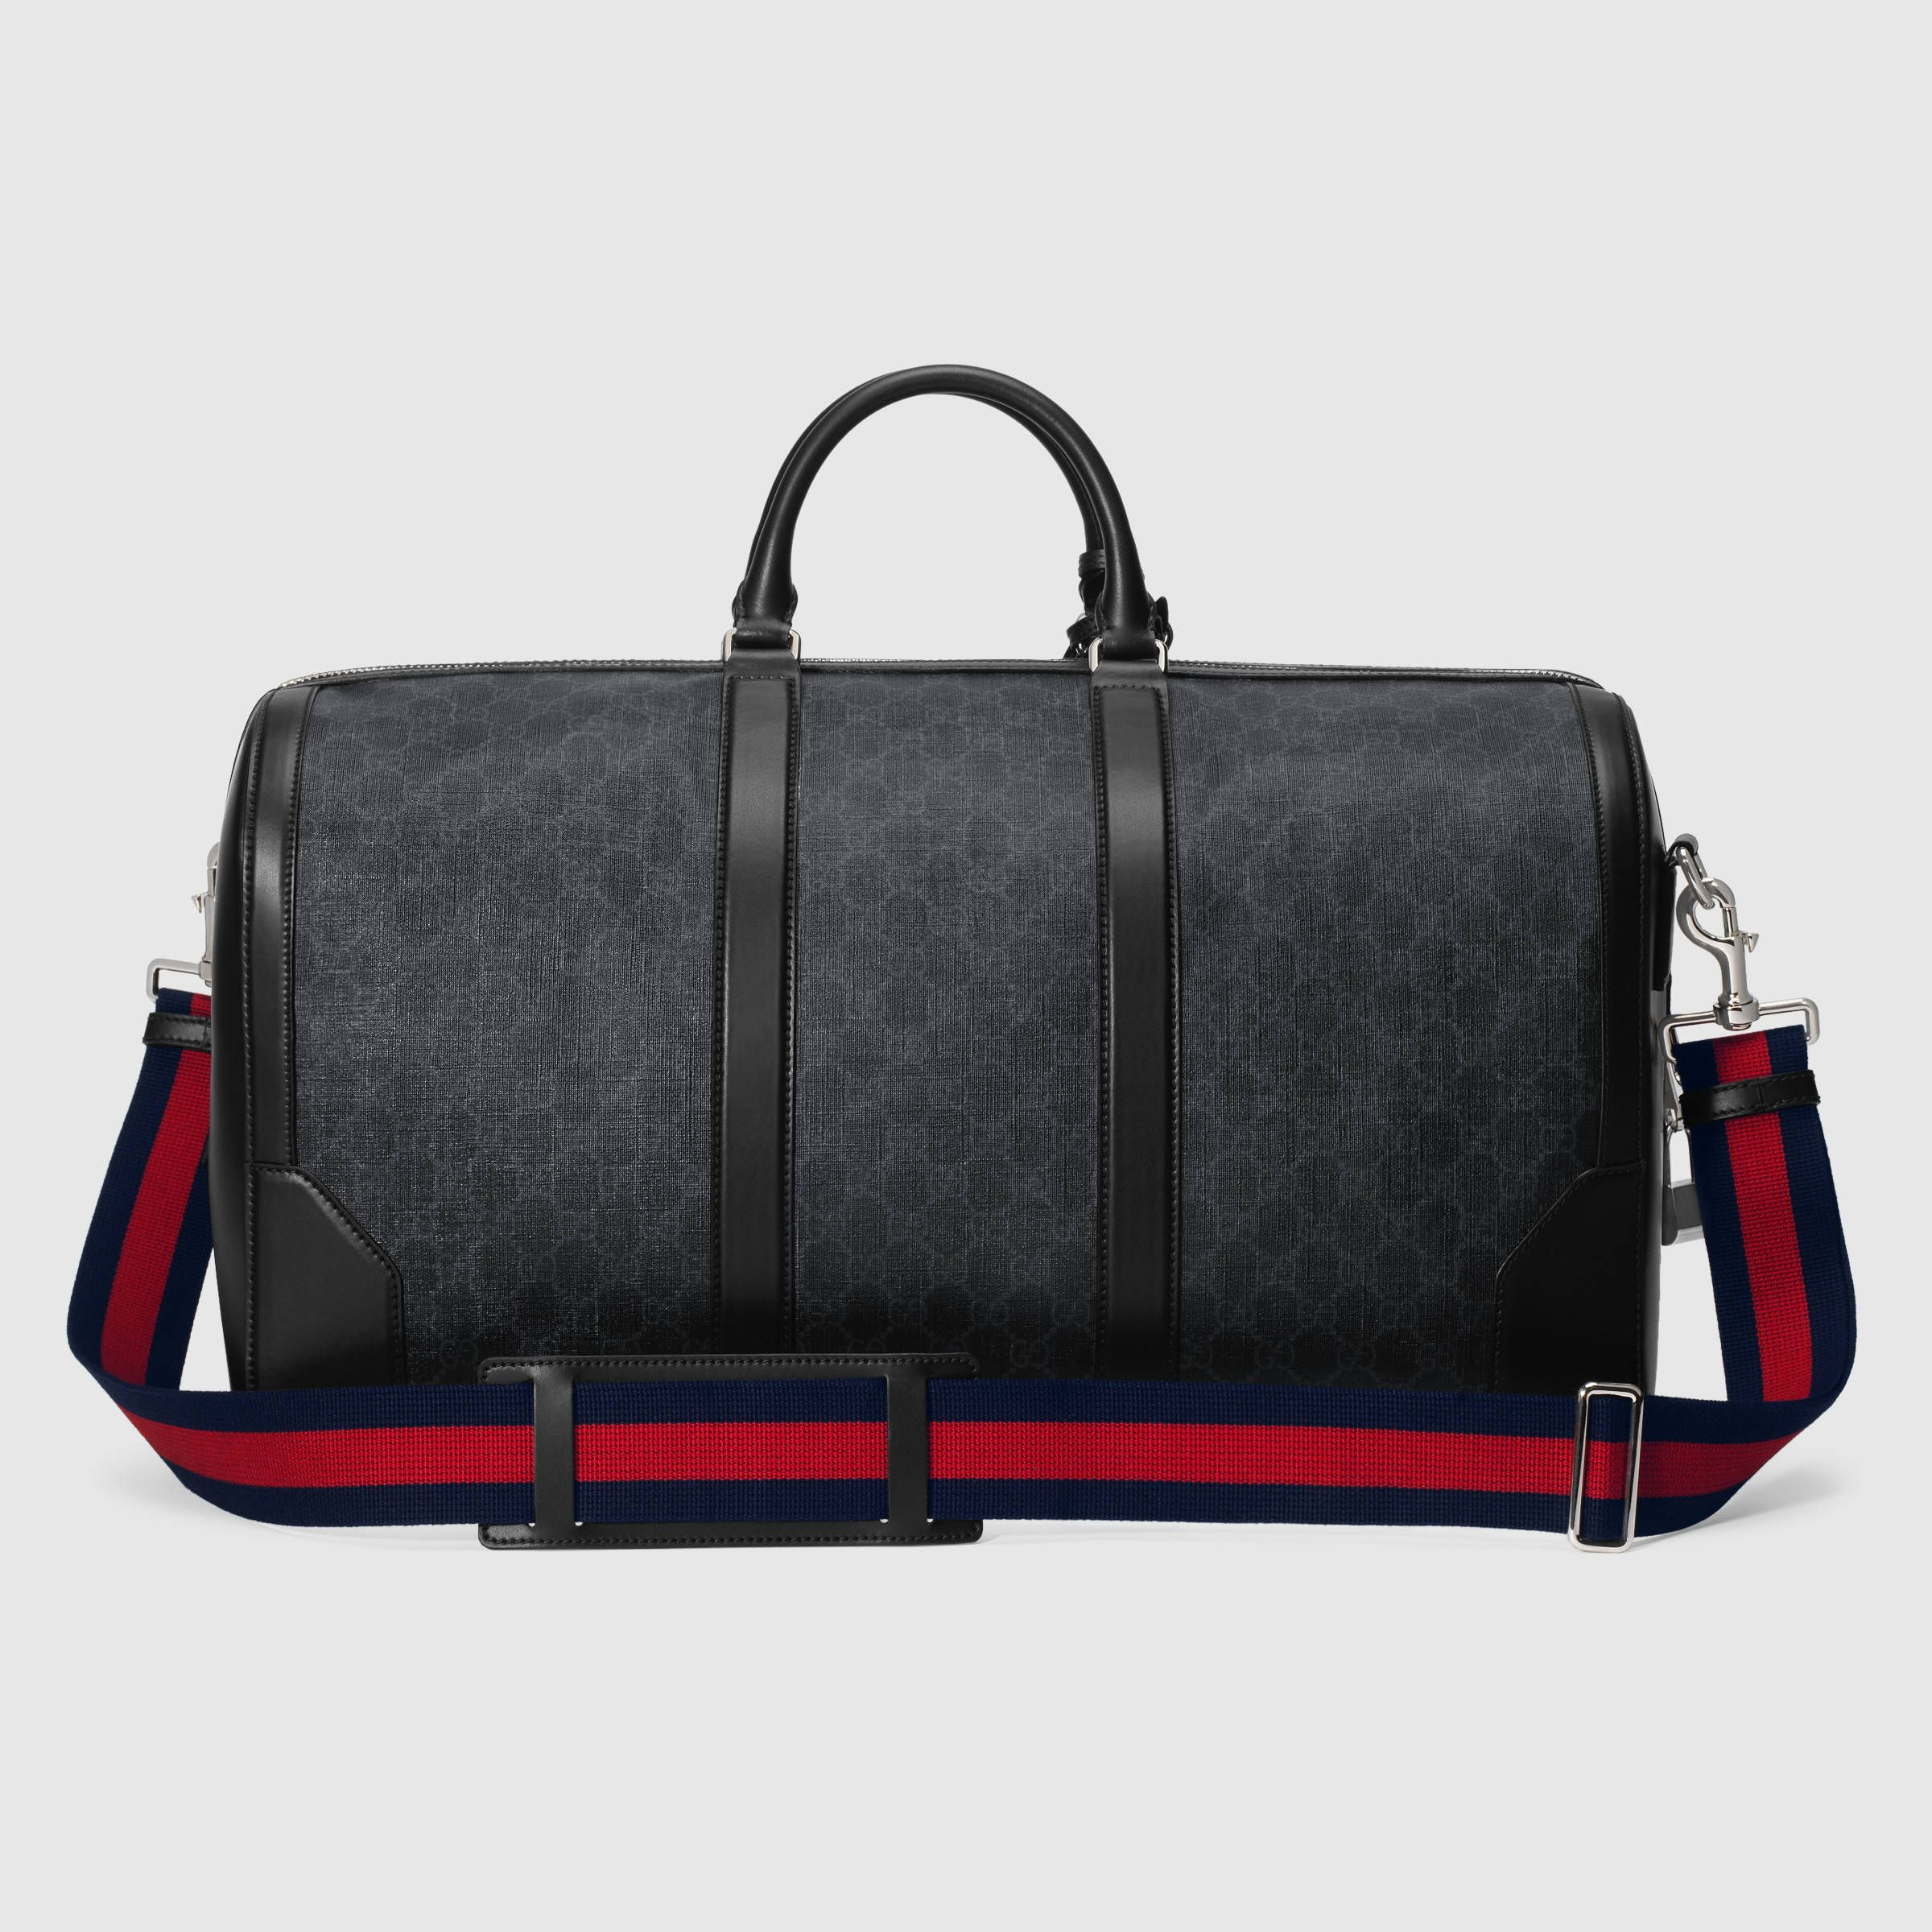 655c8f6e7ac Gucci Soft GG Supreme carry-on duffle Detail 3. Find this Pin and more ...